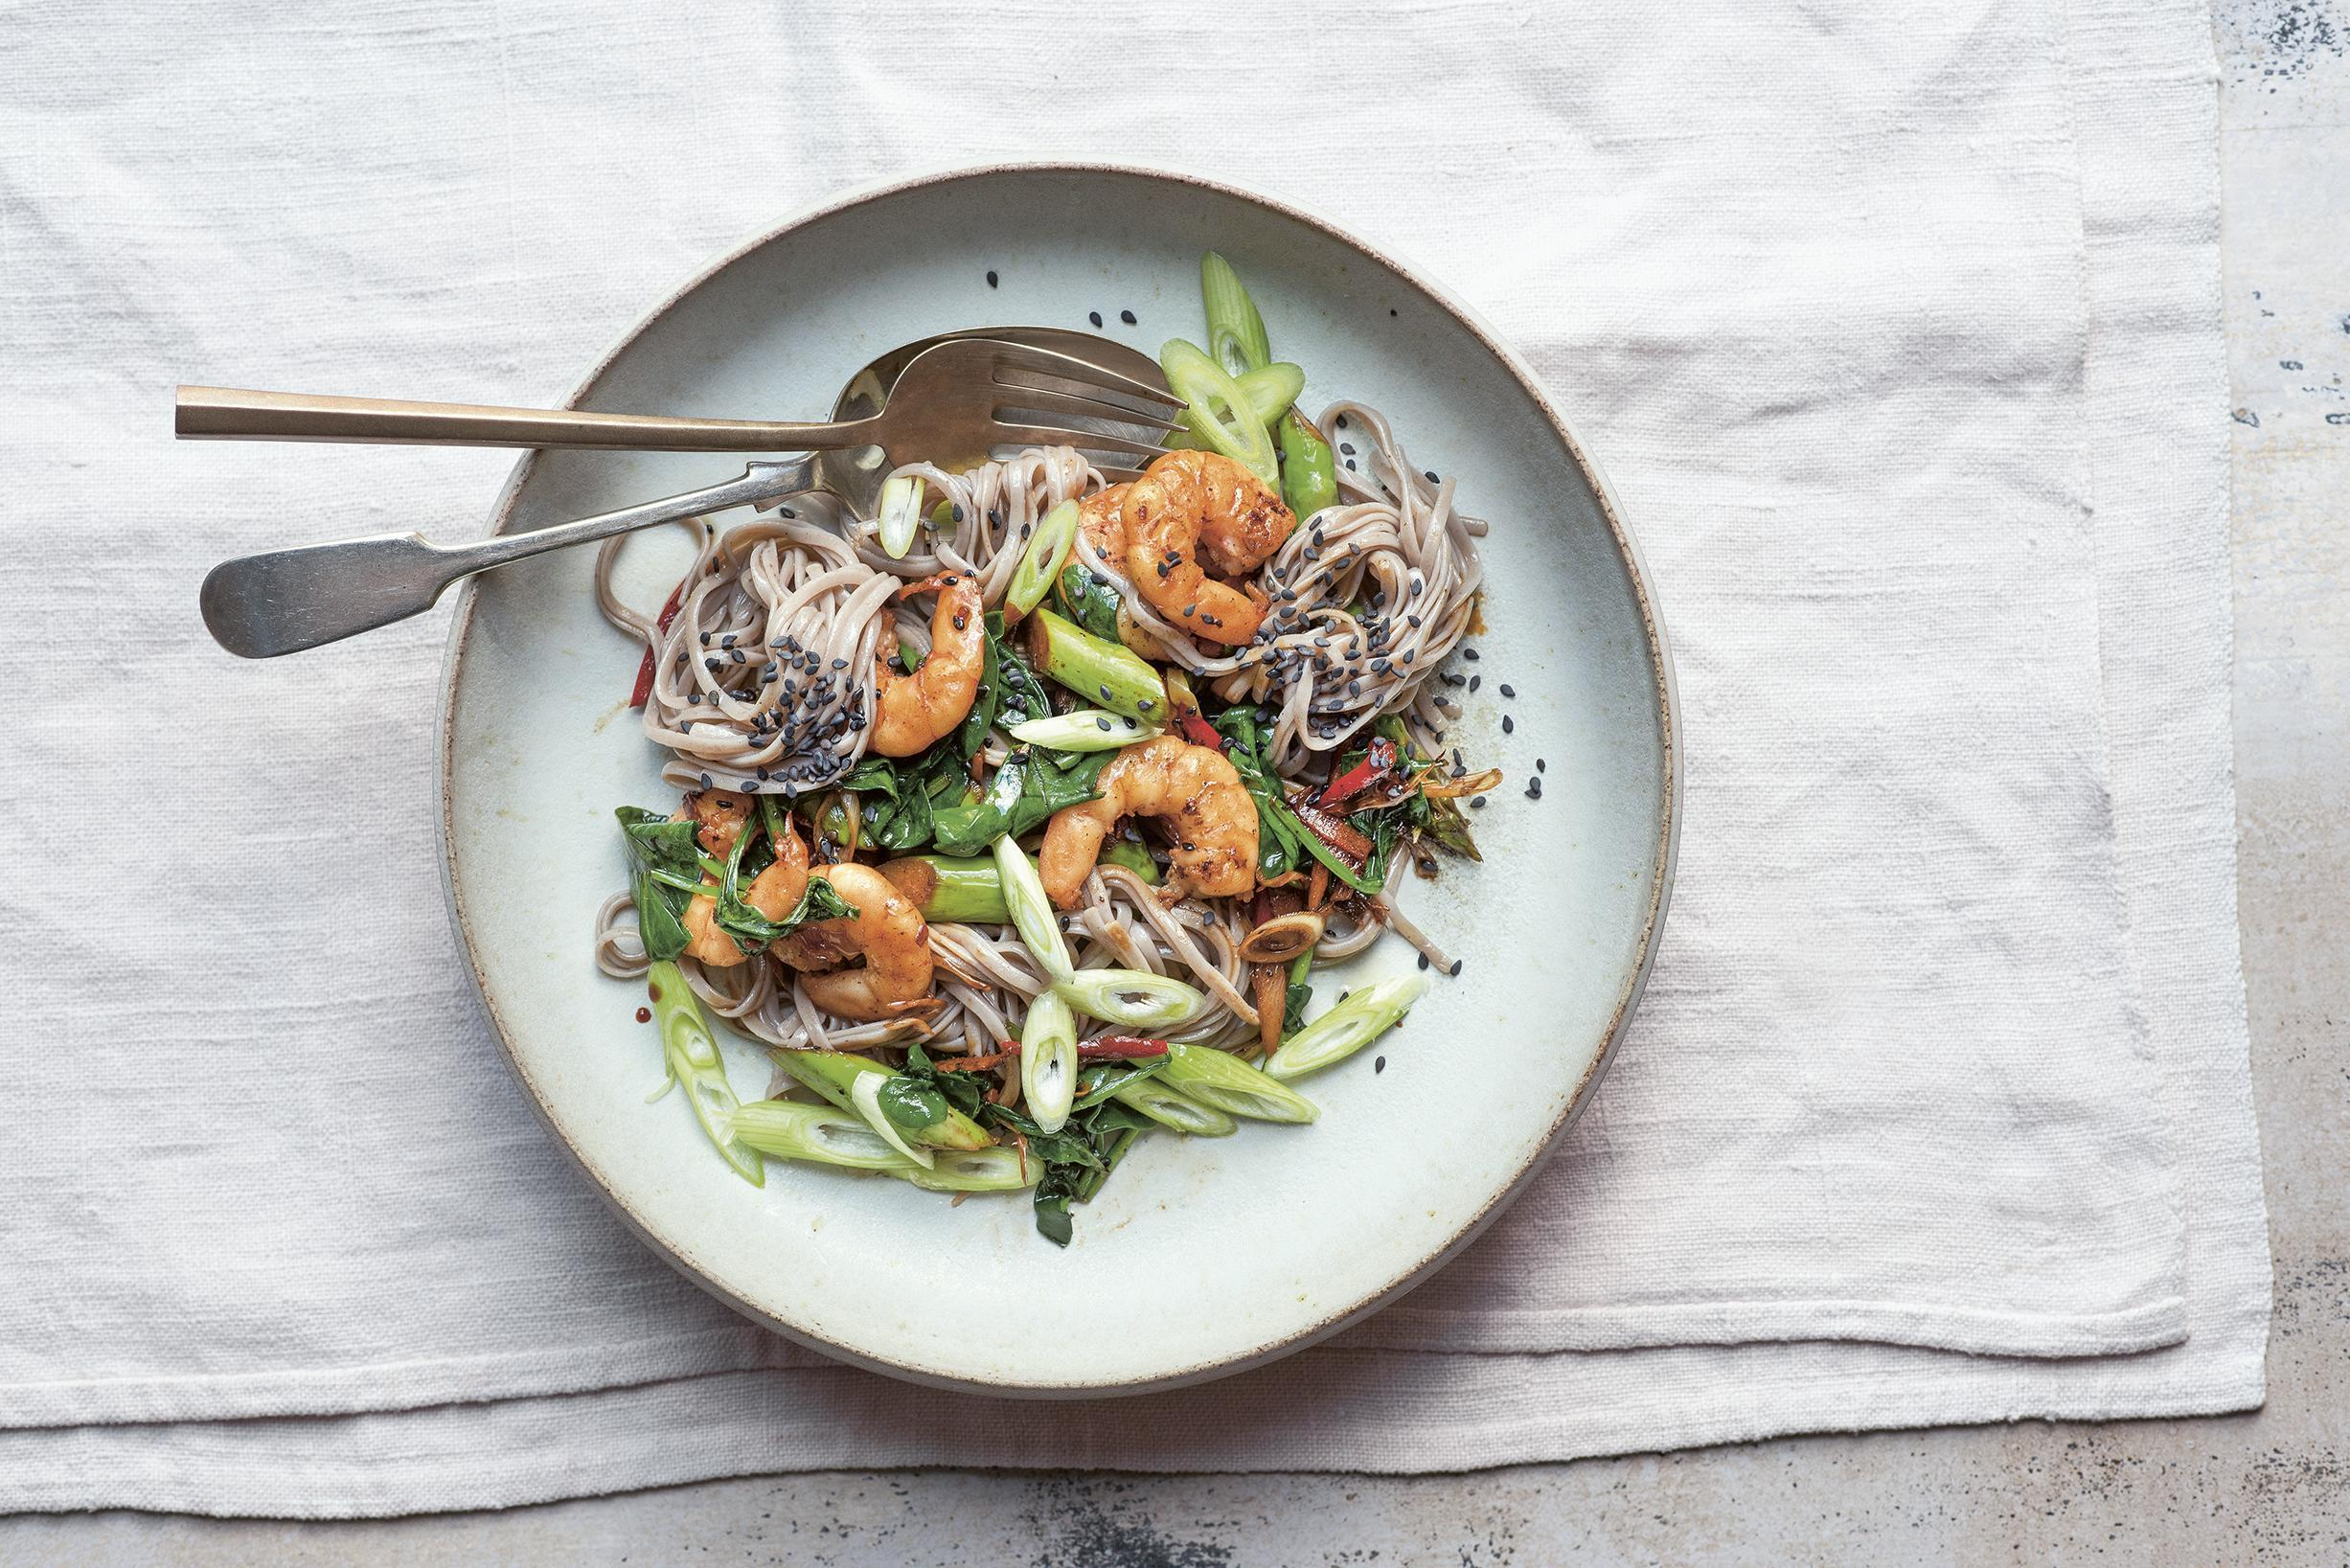 Asparagus, prawn and lemon grass stir fry with soba noodles